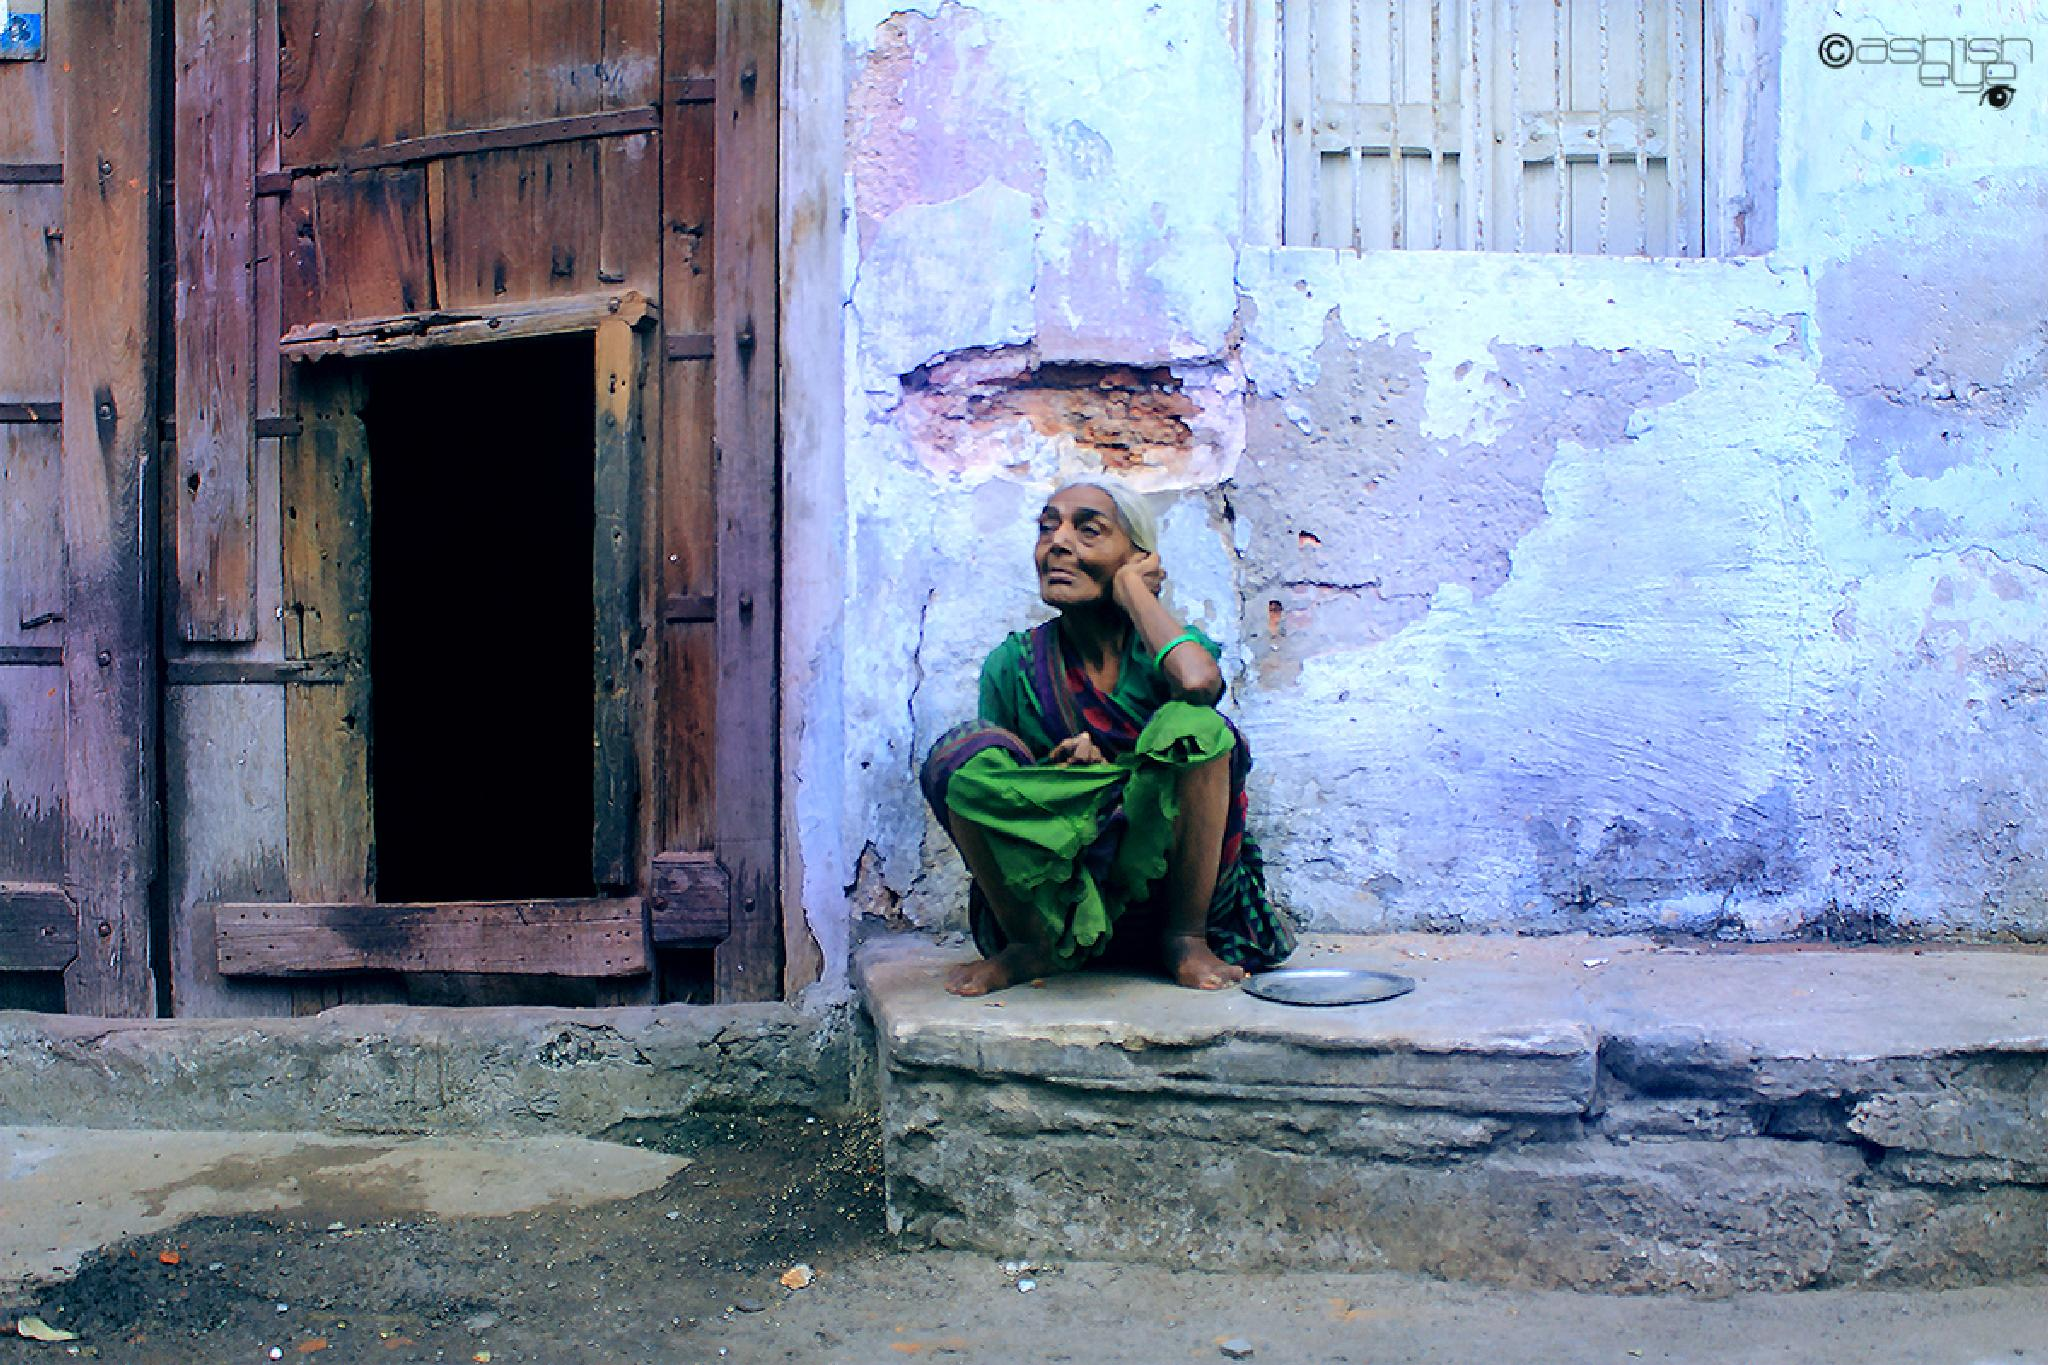 Old age by ashish.mehta.921